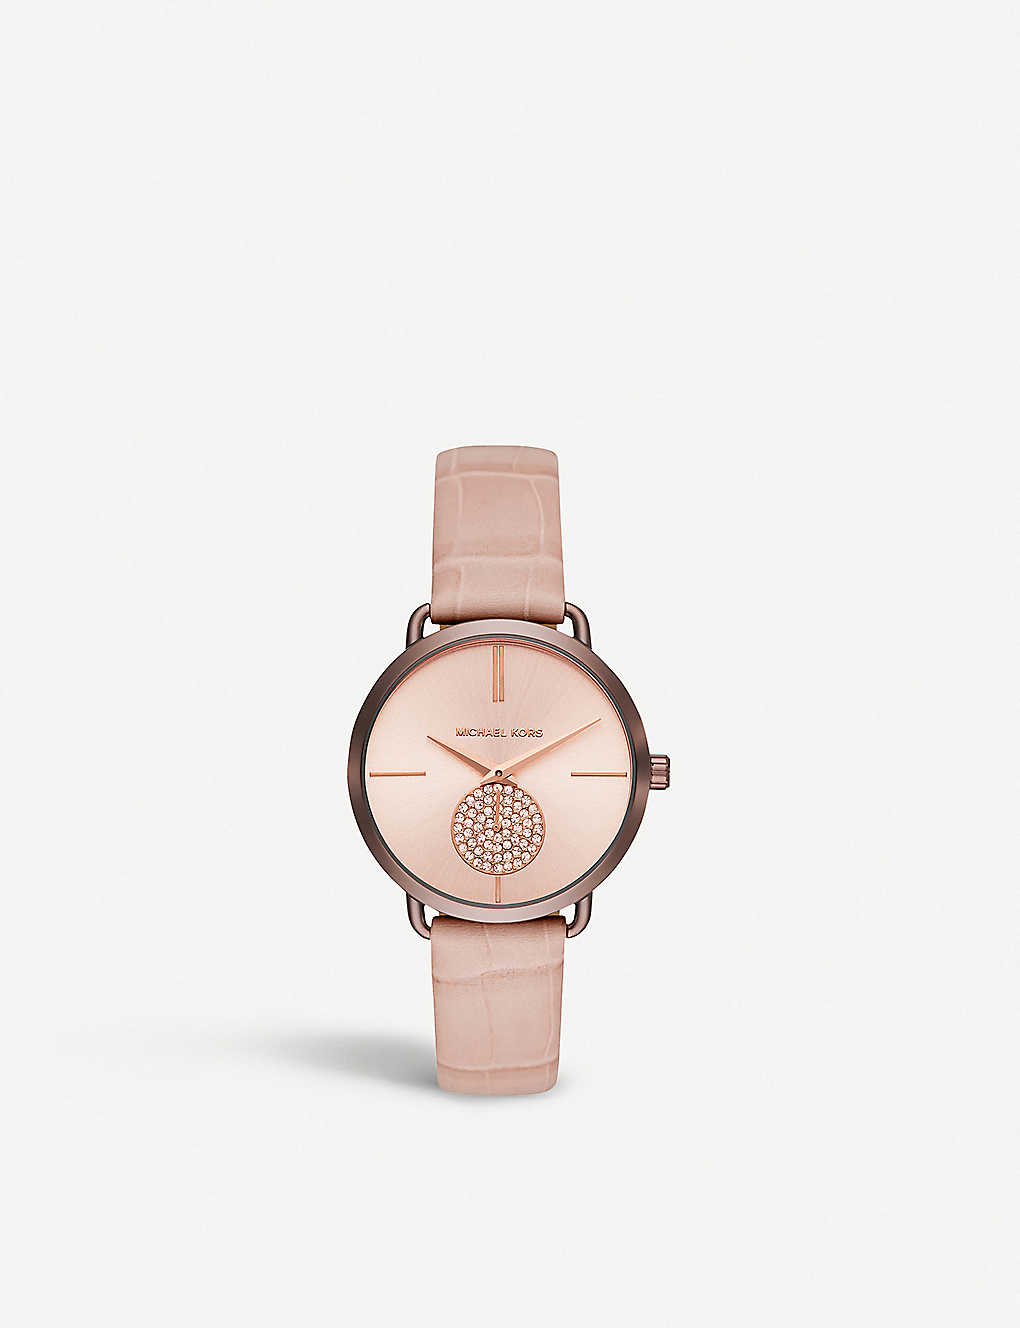 5901a87111 MICHAEL KORS MK2721 Portia rose gold-toned stainless steel and leather watch